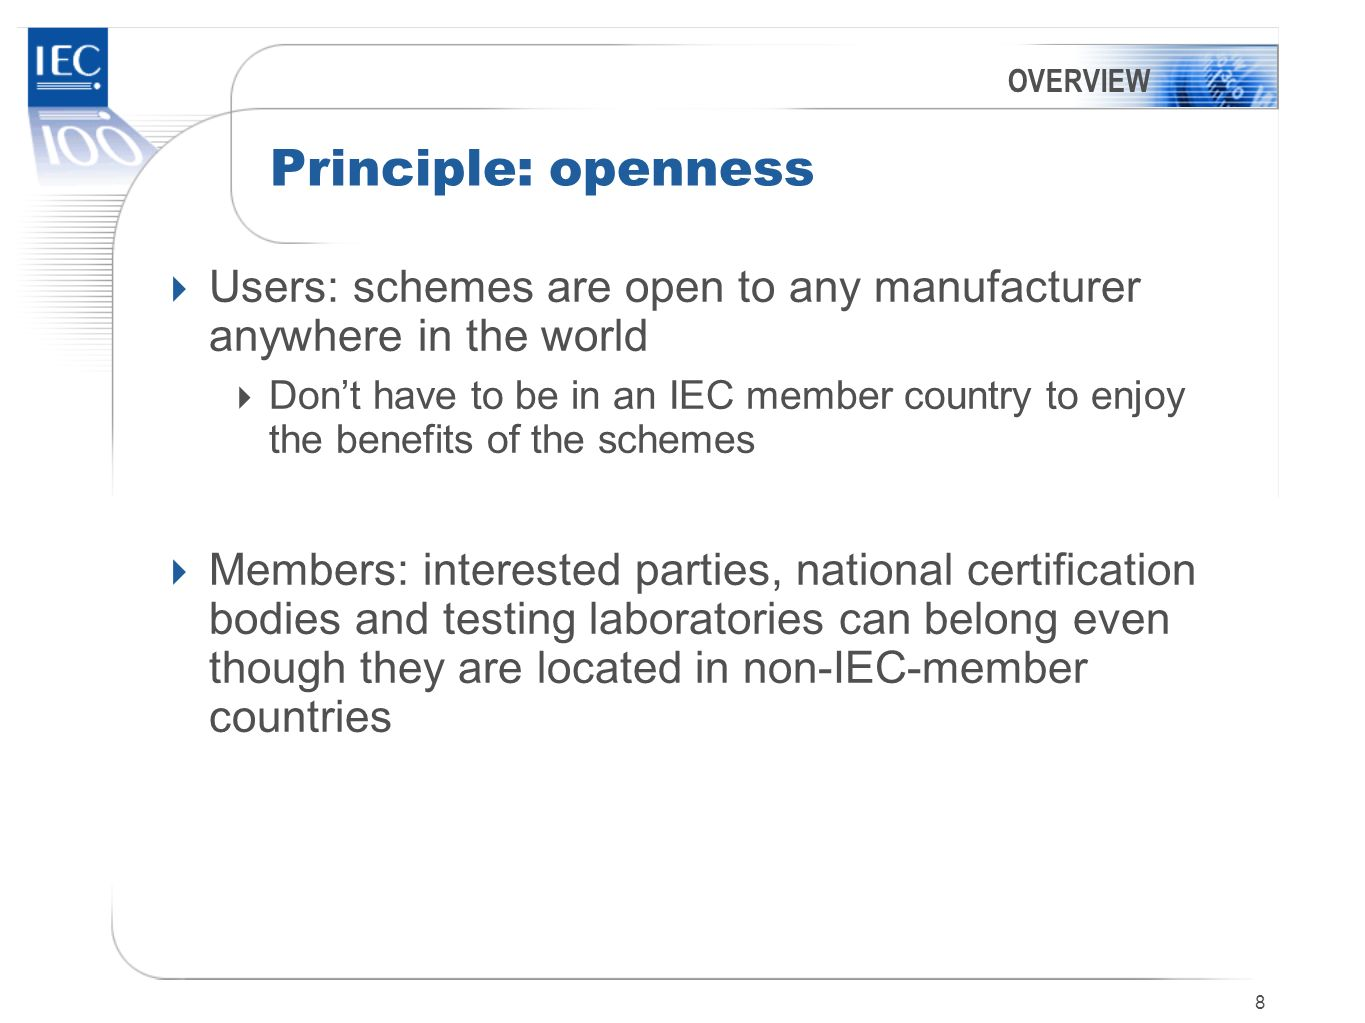 9 The Schemes are Product-based, not system-based, although IECQ has a system component Users of IEC international standards but structured to accommodate national differences Membership organizations Governed by the members Self-financing Managed by IEC staff Overseen by the IEC Conformity Assessment Board